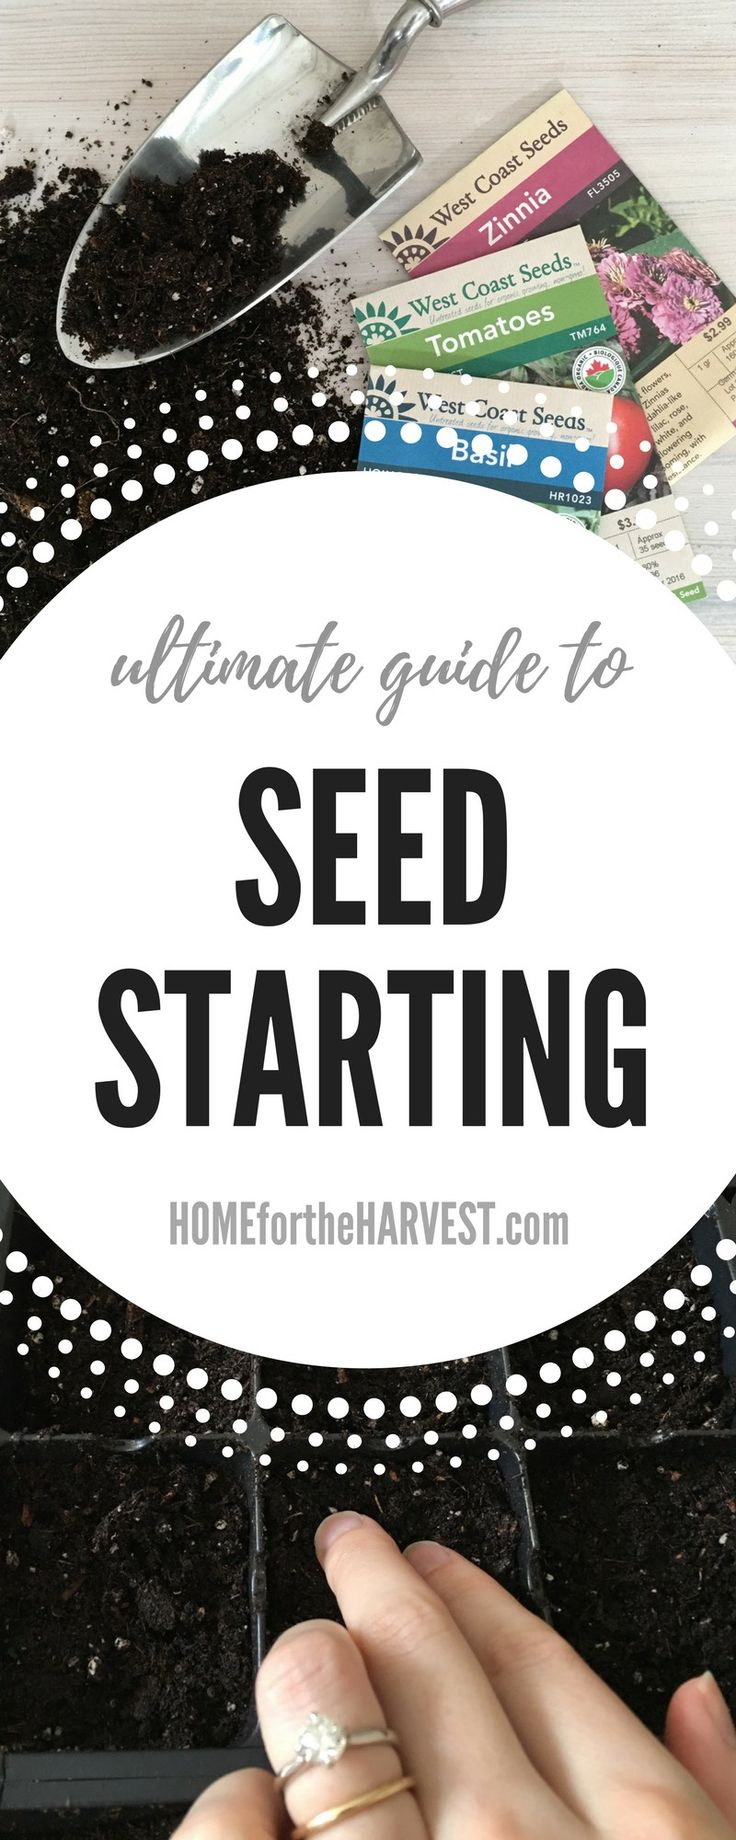 Seed Starting - The Ultimate Guide! Learn how to grow healthy plants from seeds with these simple, step-by-step instructions | Home for the Harvest